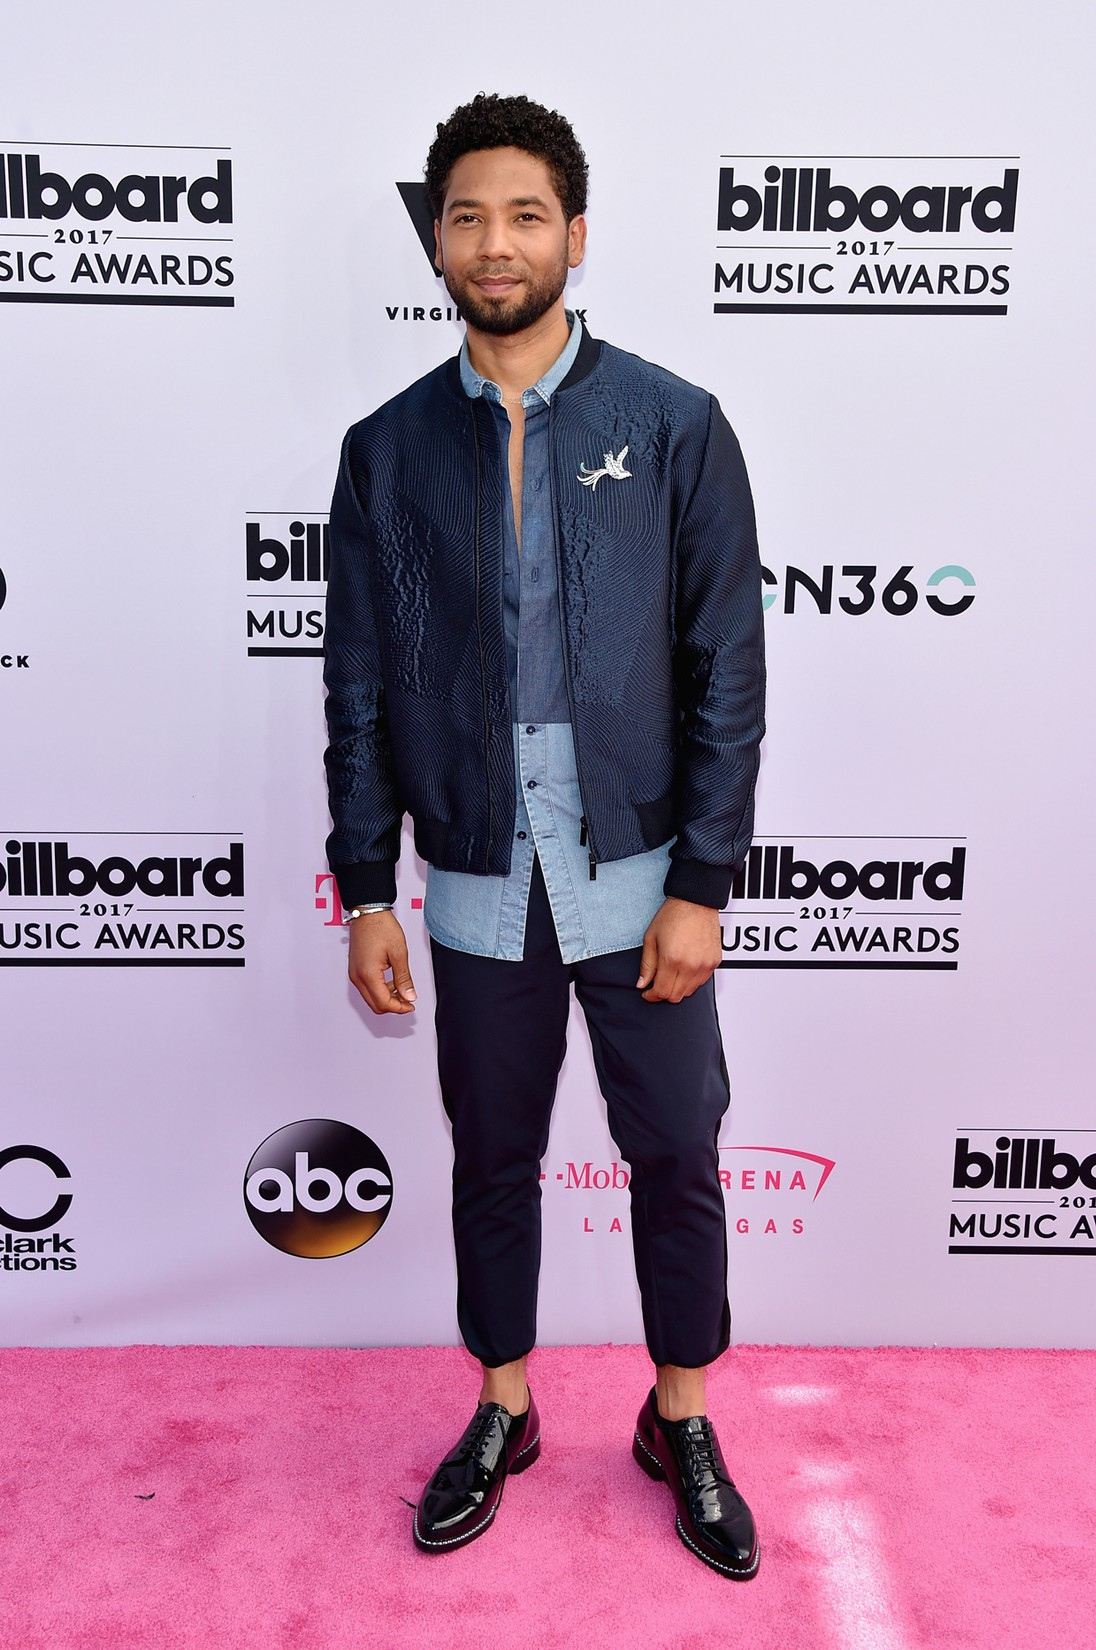 Jussie Smollett attends the 2017 Billboard Music Awards at T-Mobile Arena on May 21, 2017 in Las Vegas.